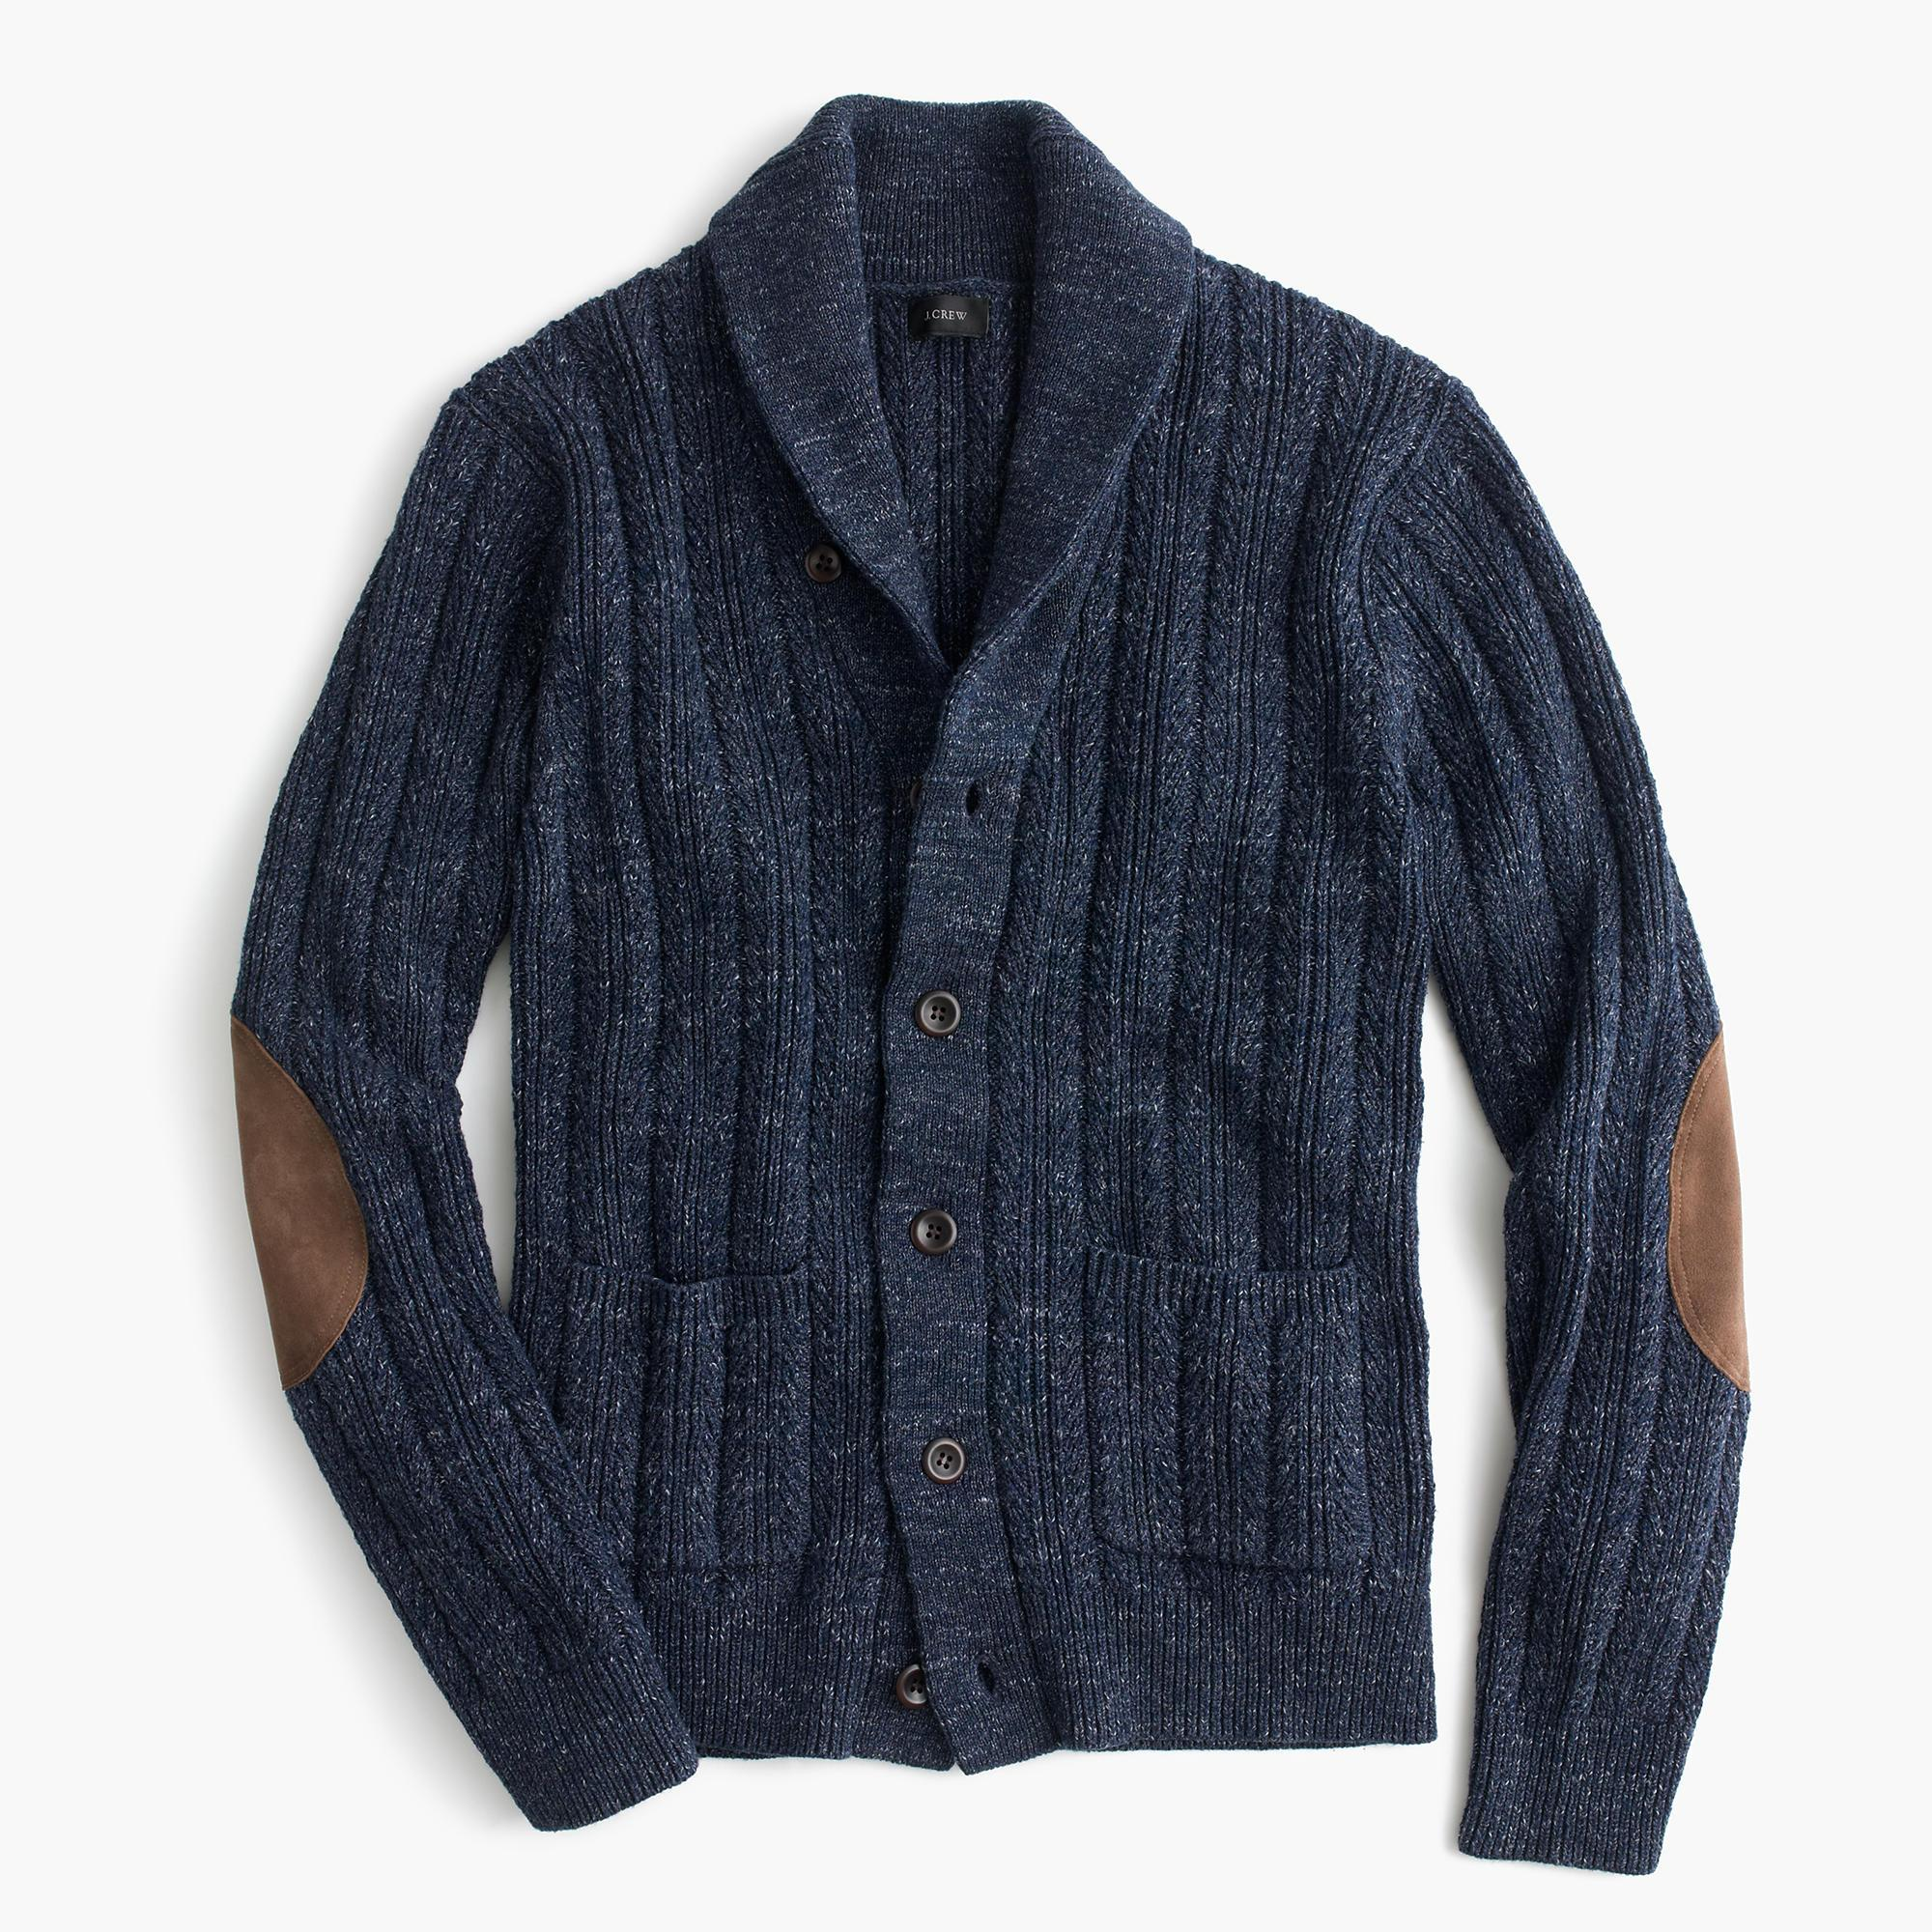 J.crew Cotton Mariner Shawl-collar Cardigan Sweater in ...